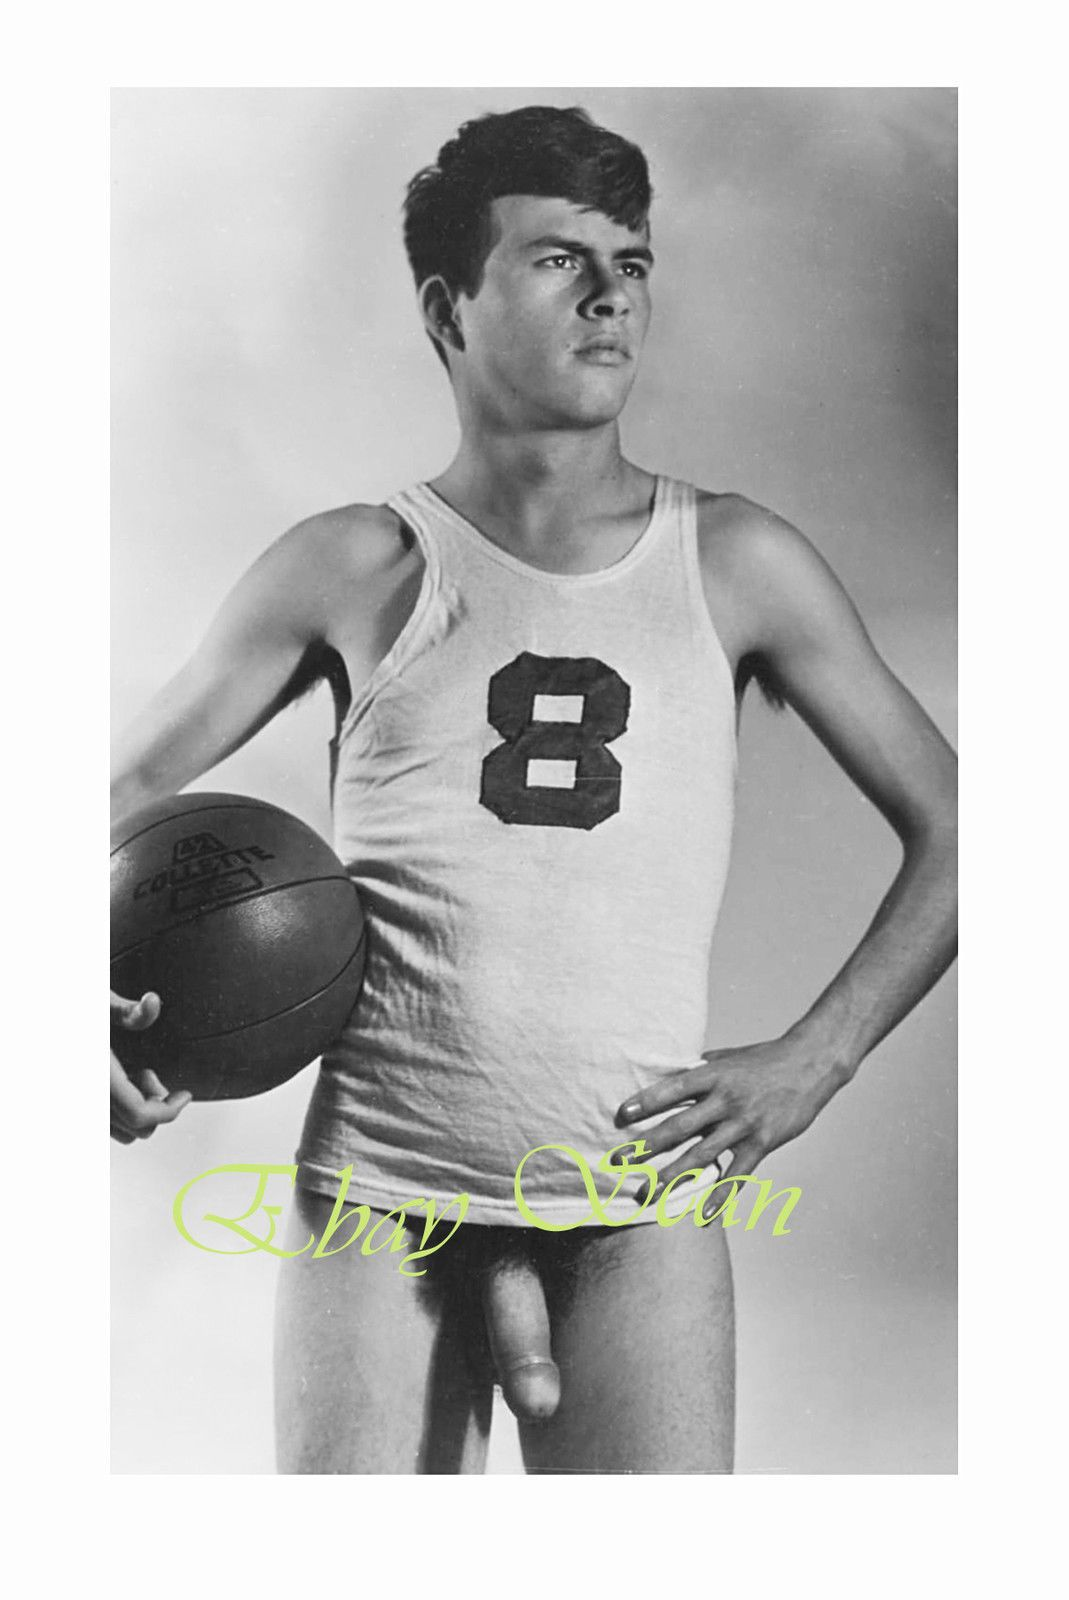 VINTAGE 1940's PHOTO HANDSOME NUDE MAN POSES WITH BASKETBALL GAY INTEREST 73